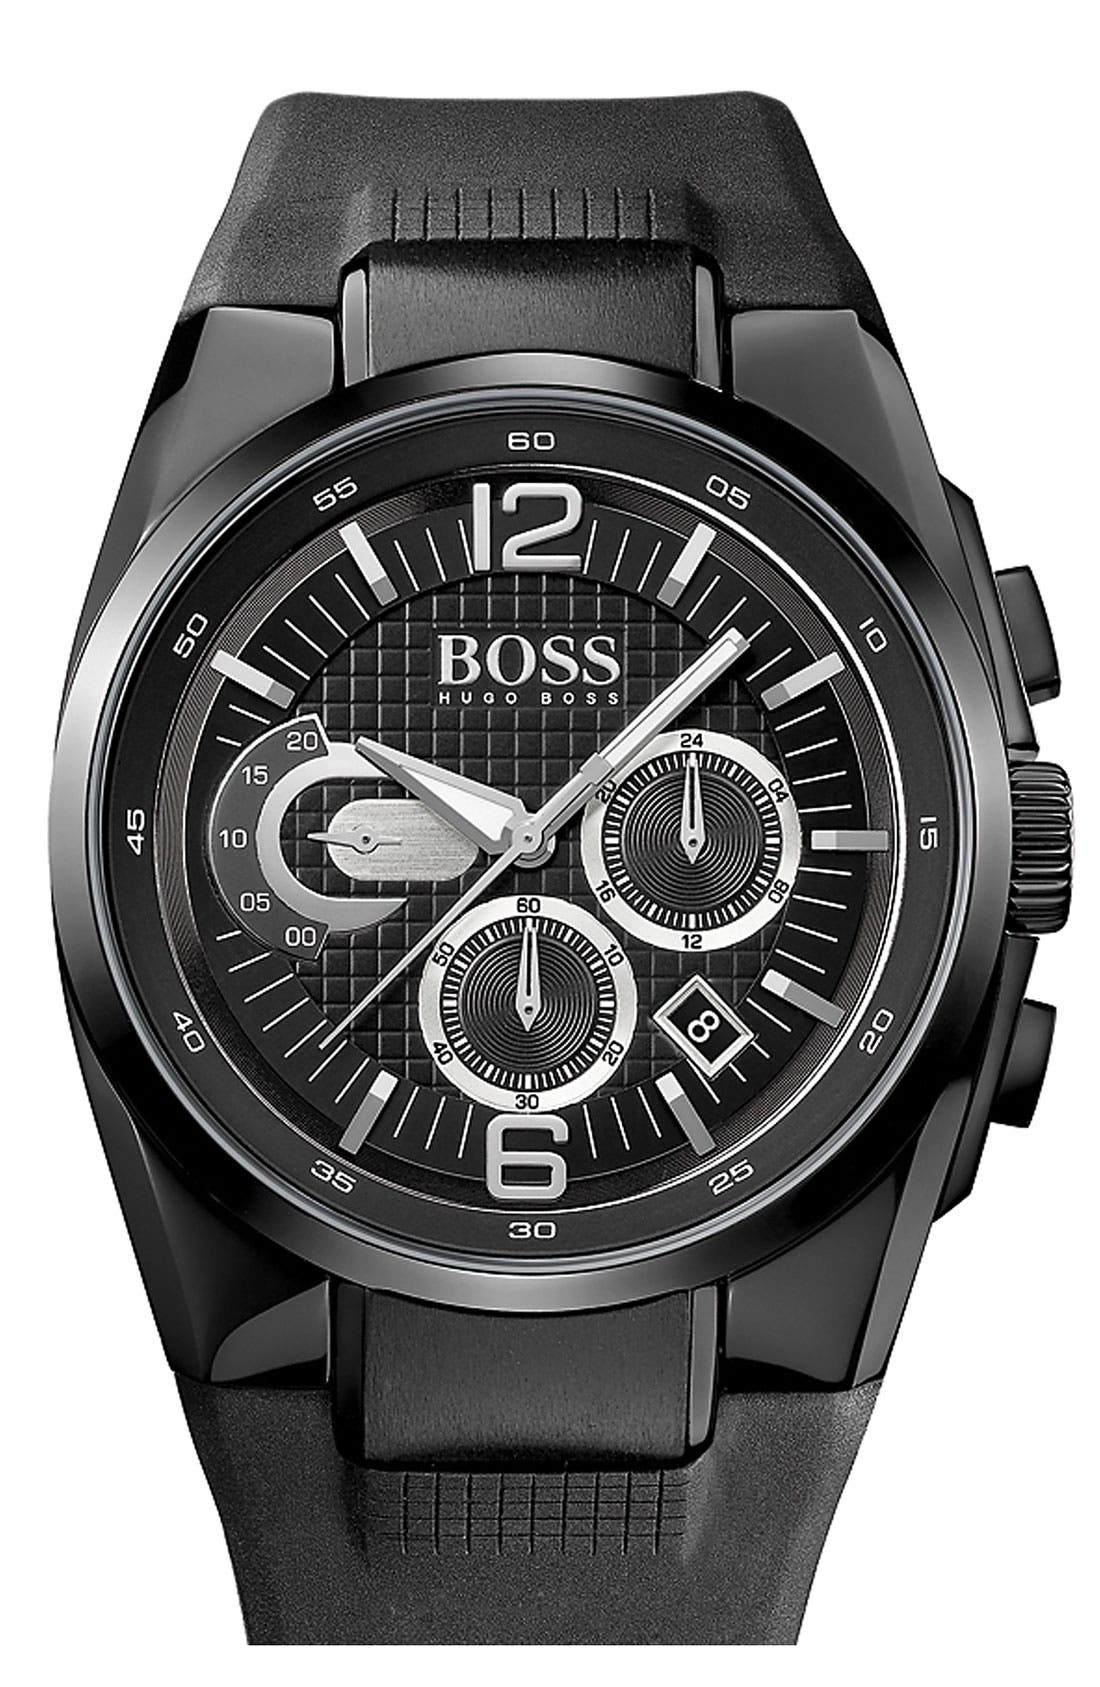 Alternate Image 1 Selected - BOSS HUGO BOSS 'HB2005' Chronograph Rubber Strap Watch, 44mm